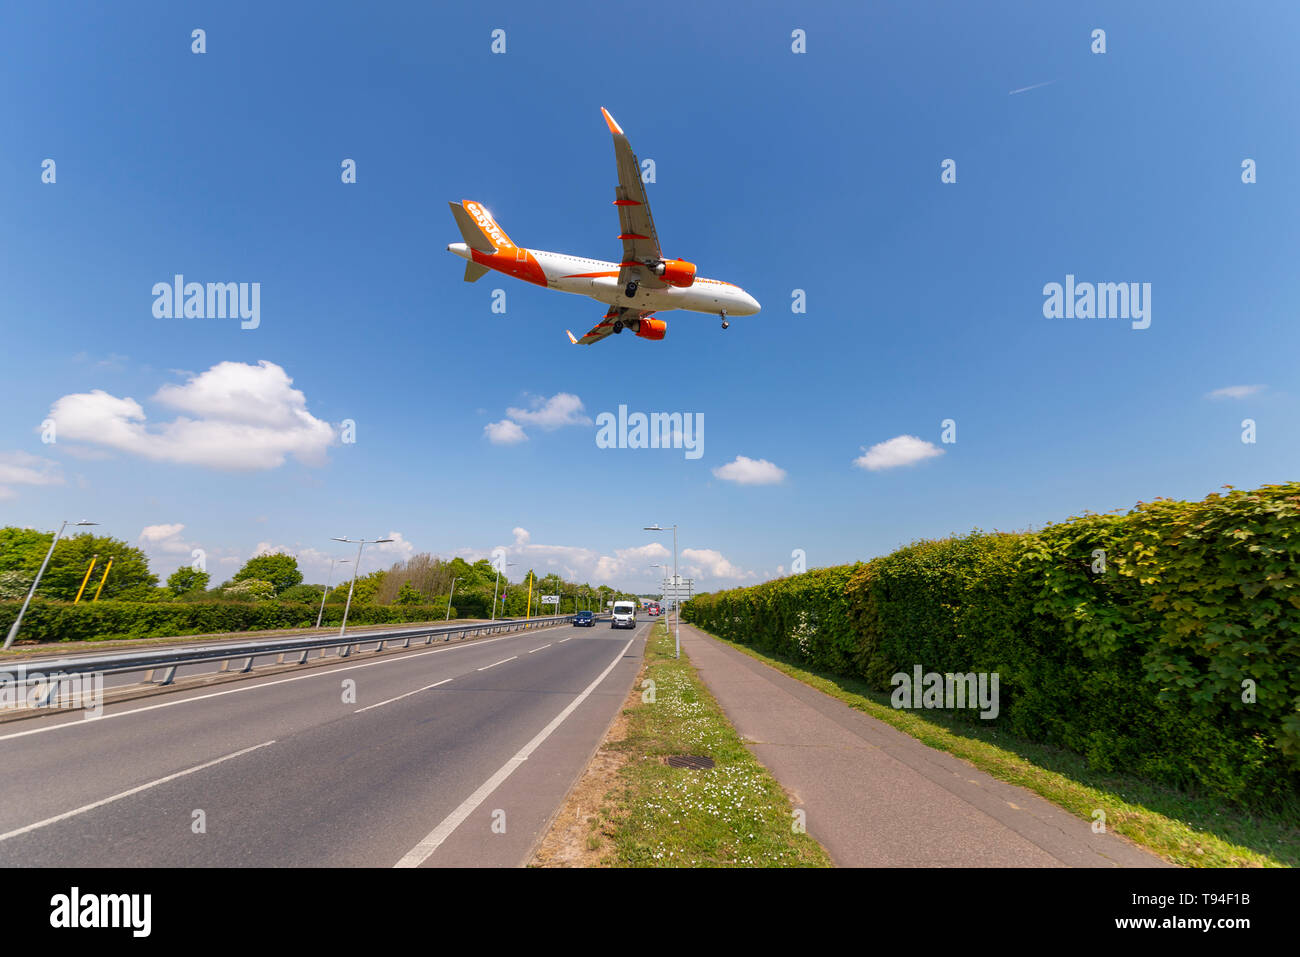 Plane Over Road Stock Photos & Plane Over Road Stock Images